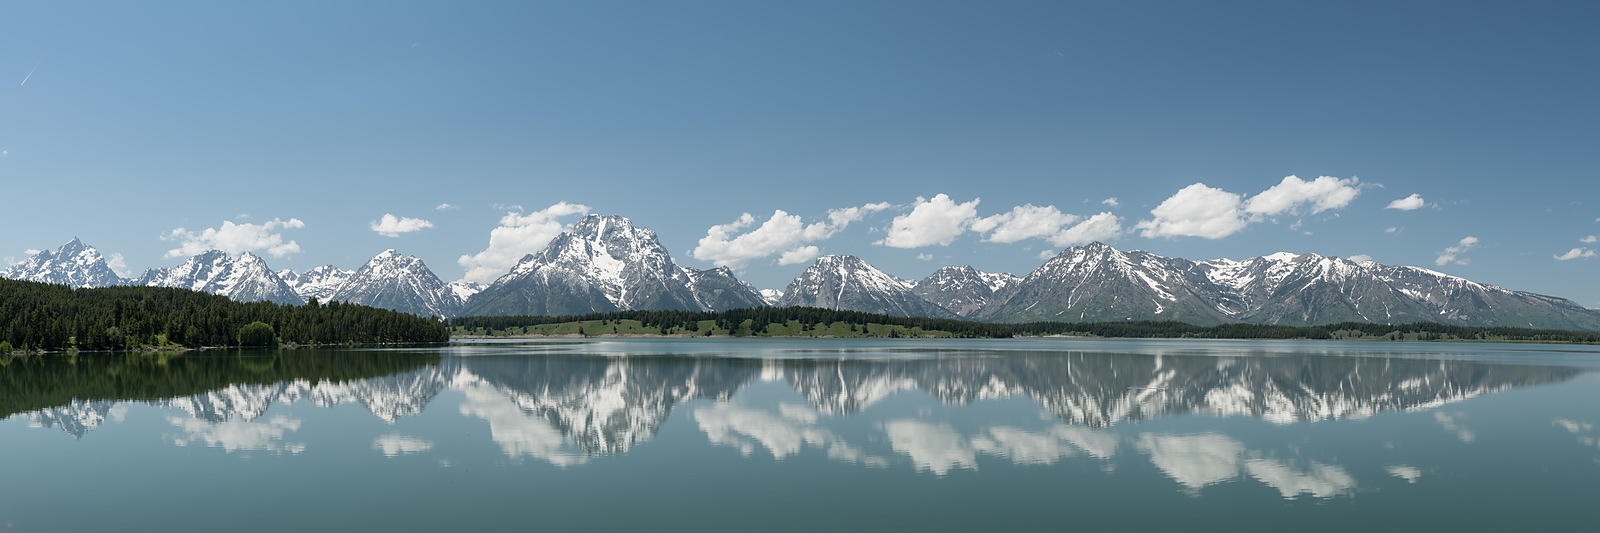 Upper-Tetons-Reflection-Jackson-Lake-Pano-2198